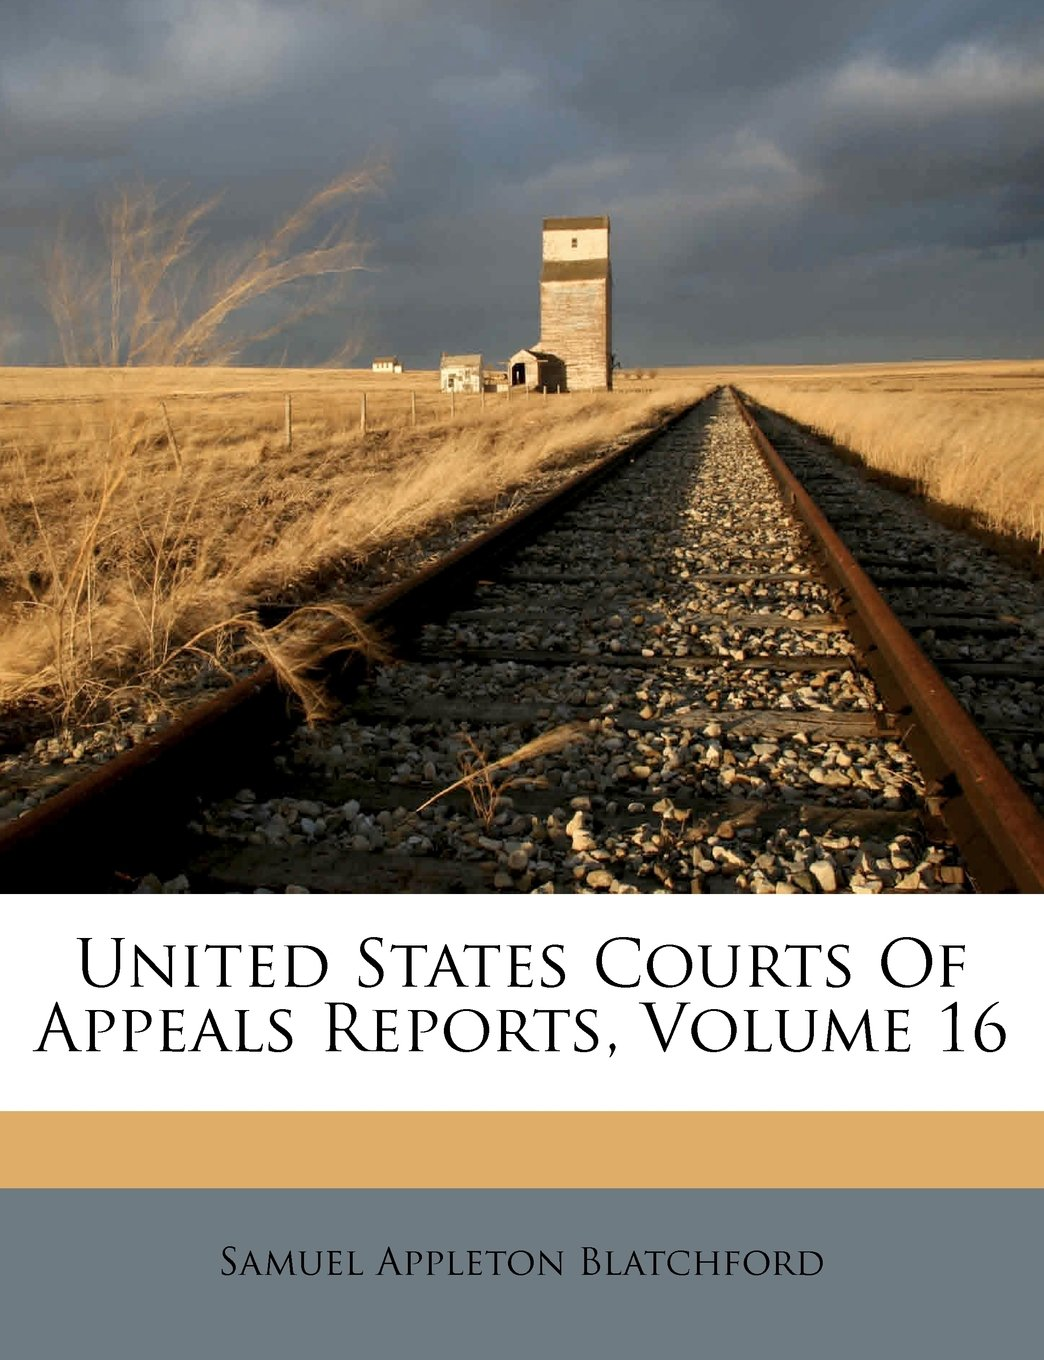 Download United States Courts Of Appeals Reports, Volume 16 pdf